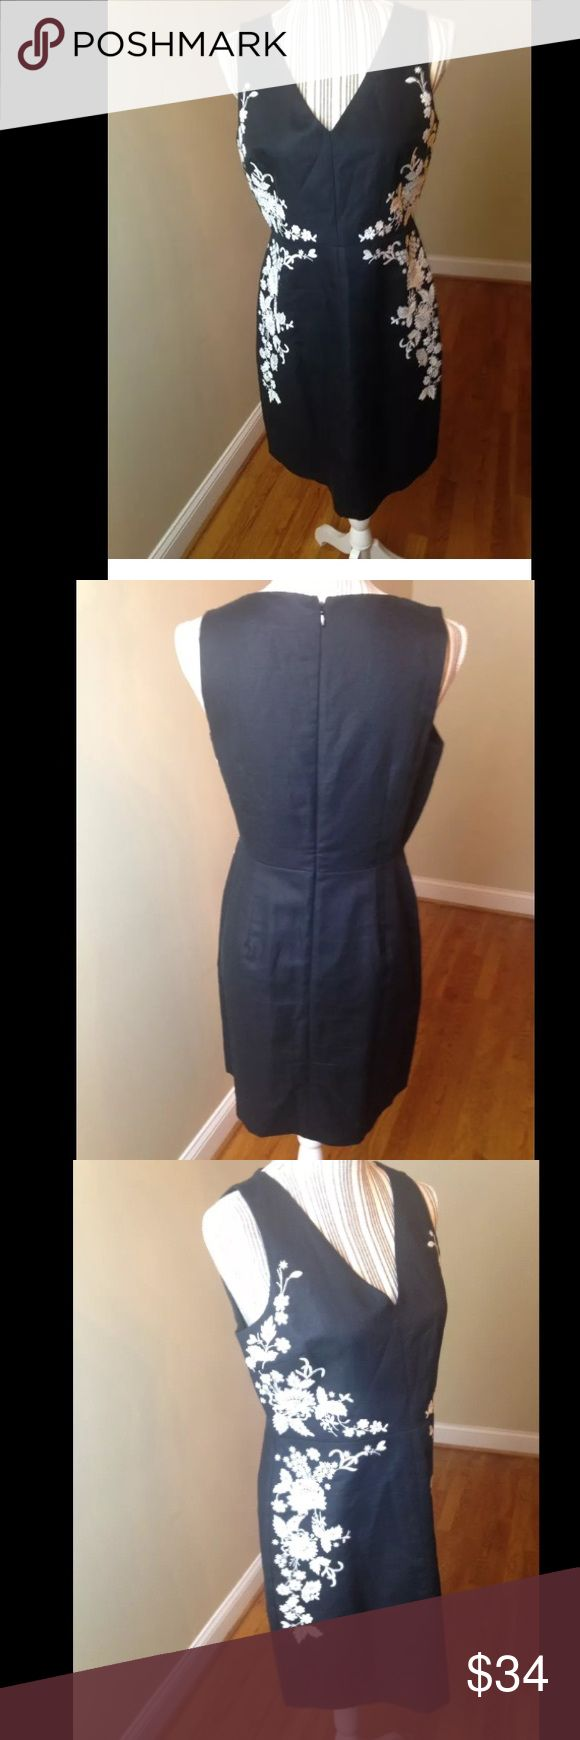 Ann Taylor loft 6P Embroidered dress Linen mixed This elegant classy sexy dress measures 17 1/2 from armpit to armpit . Making it 35 inches across. The waist measures is 30 inches . The length is 35 inches long. I really wish I could fit it...EUC. Looks brand new. Has been dry cleaned ..I take care of all my items and value every customer. There are no marks or stains..stored in a clean and smoke free environment. As I want your item to arrive to you on time, I ship fast. Ann Taylor Dresses…